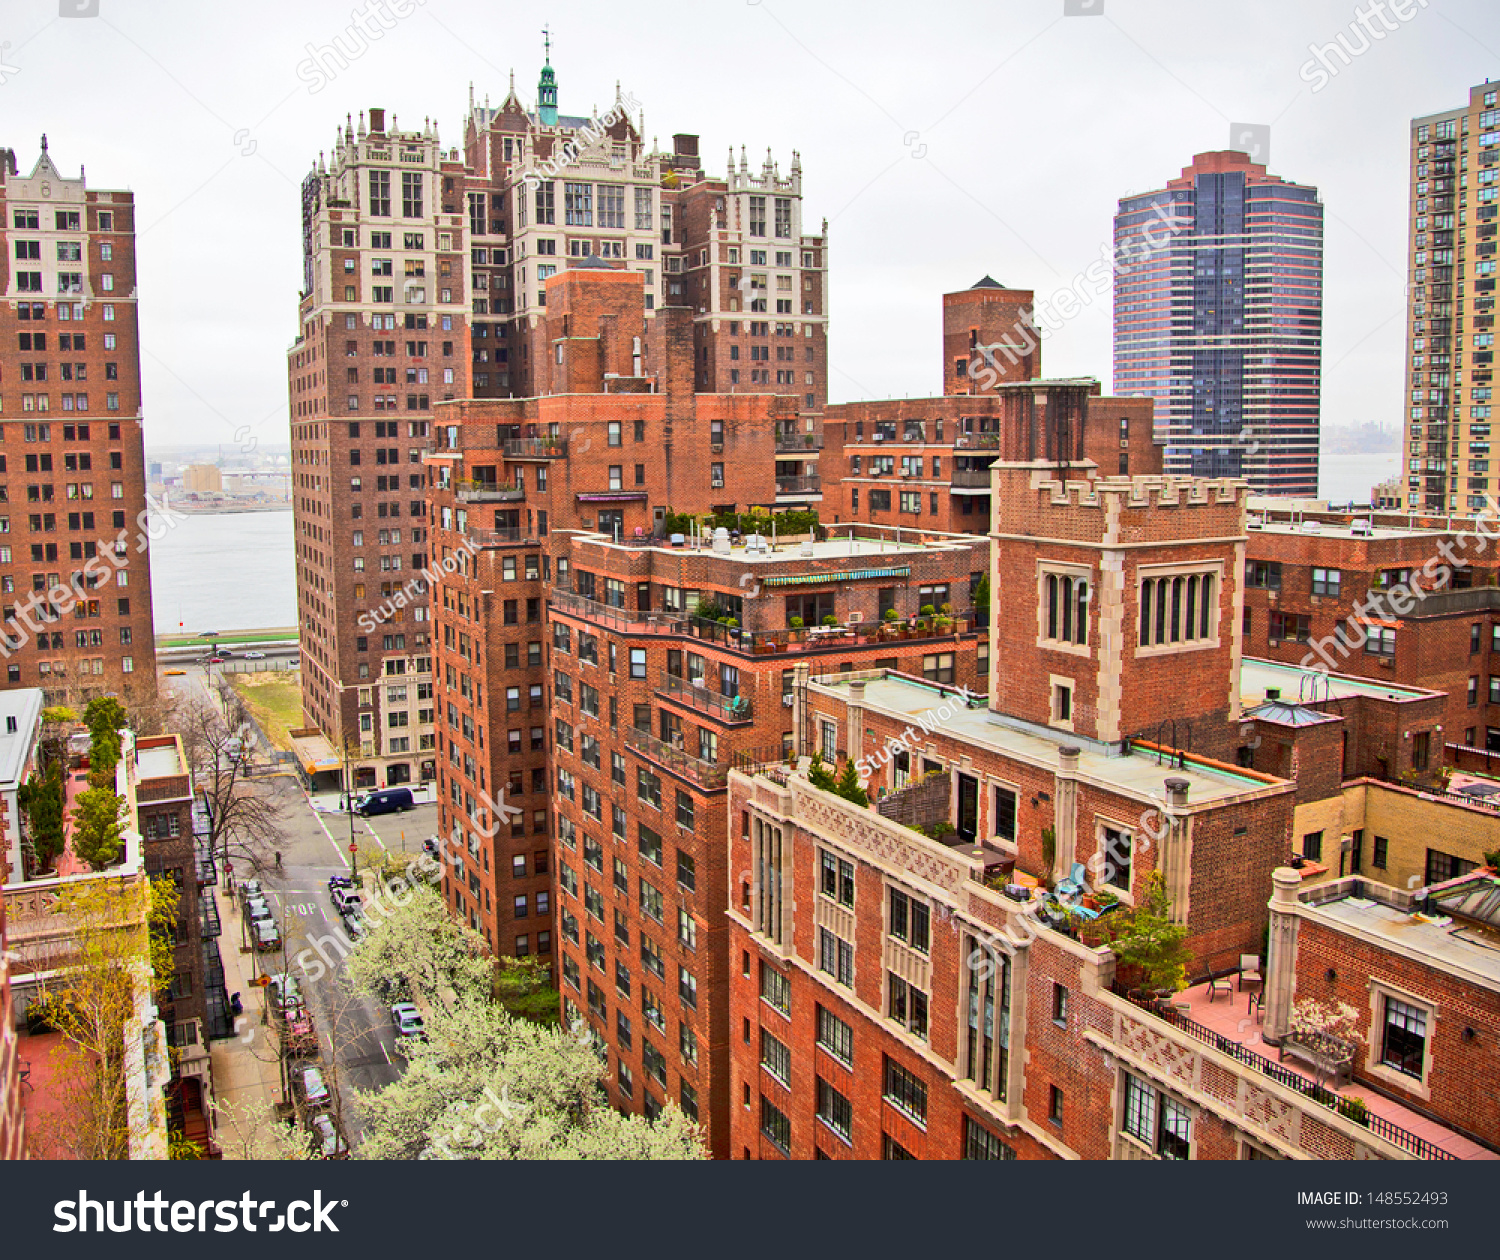 Apartments In Manhatten: Traditional Red Brick Apartments In Manhattan New York